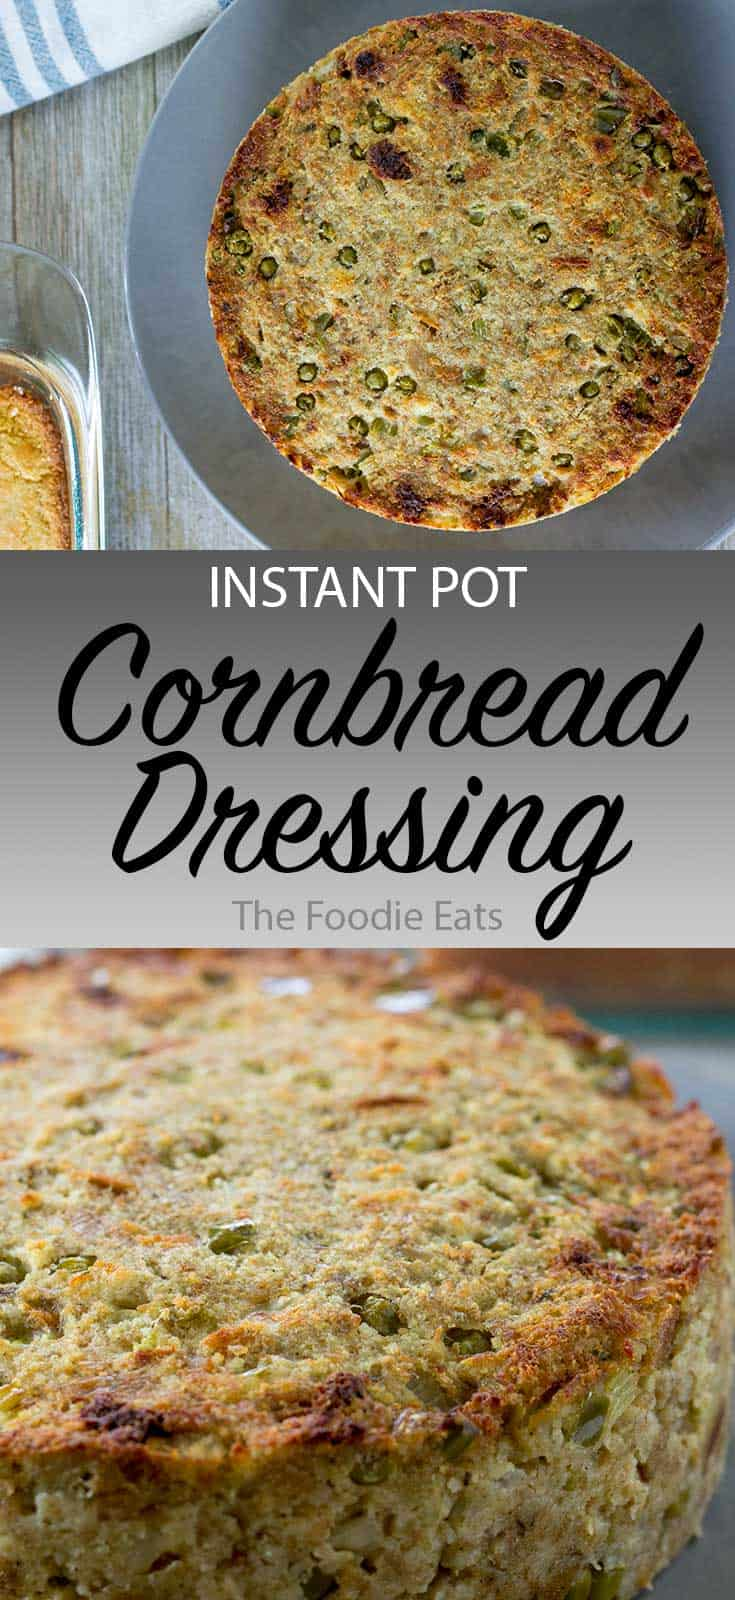 Instant Pot Stuffing AKA Cornbread Dressing | The Foodie Eats